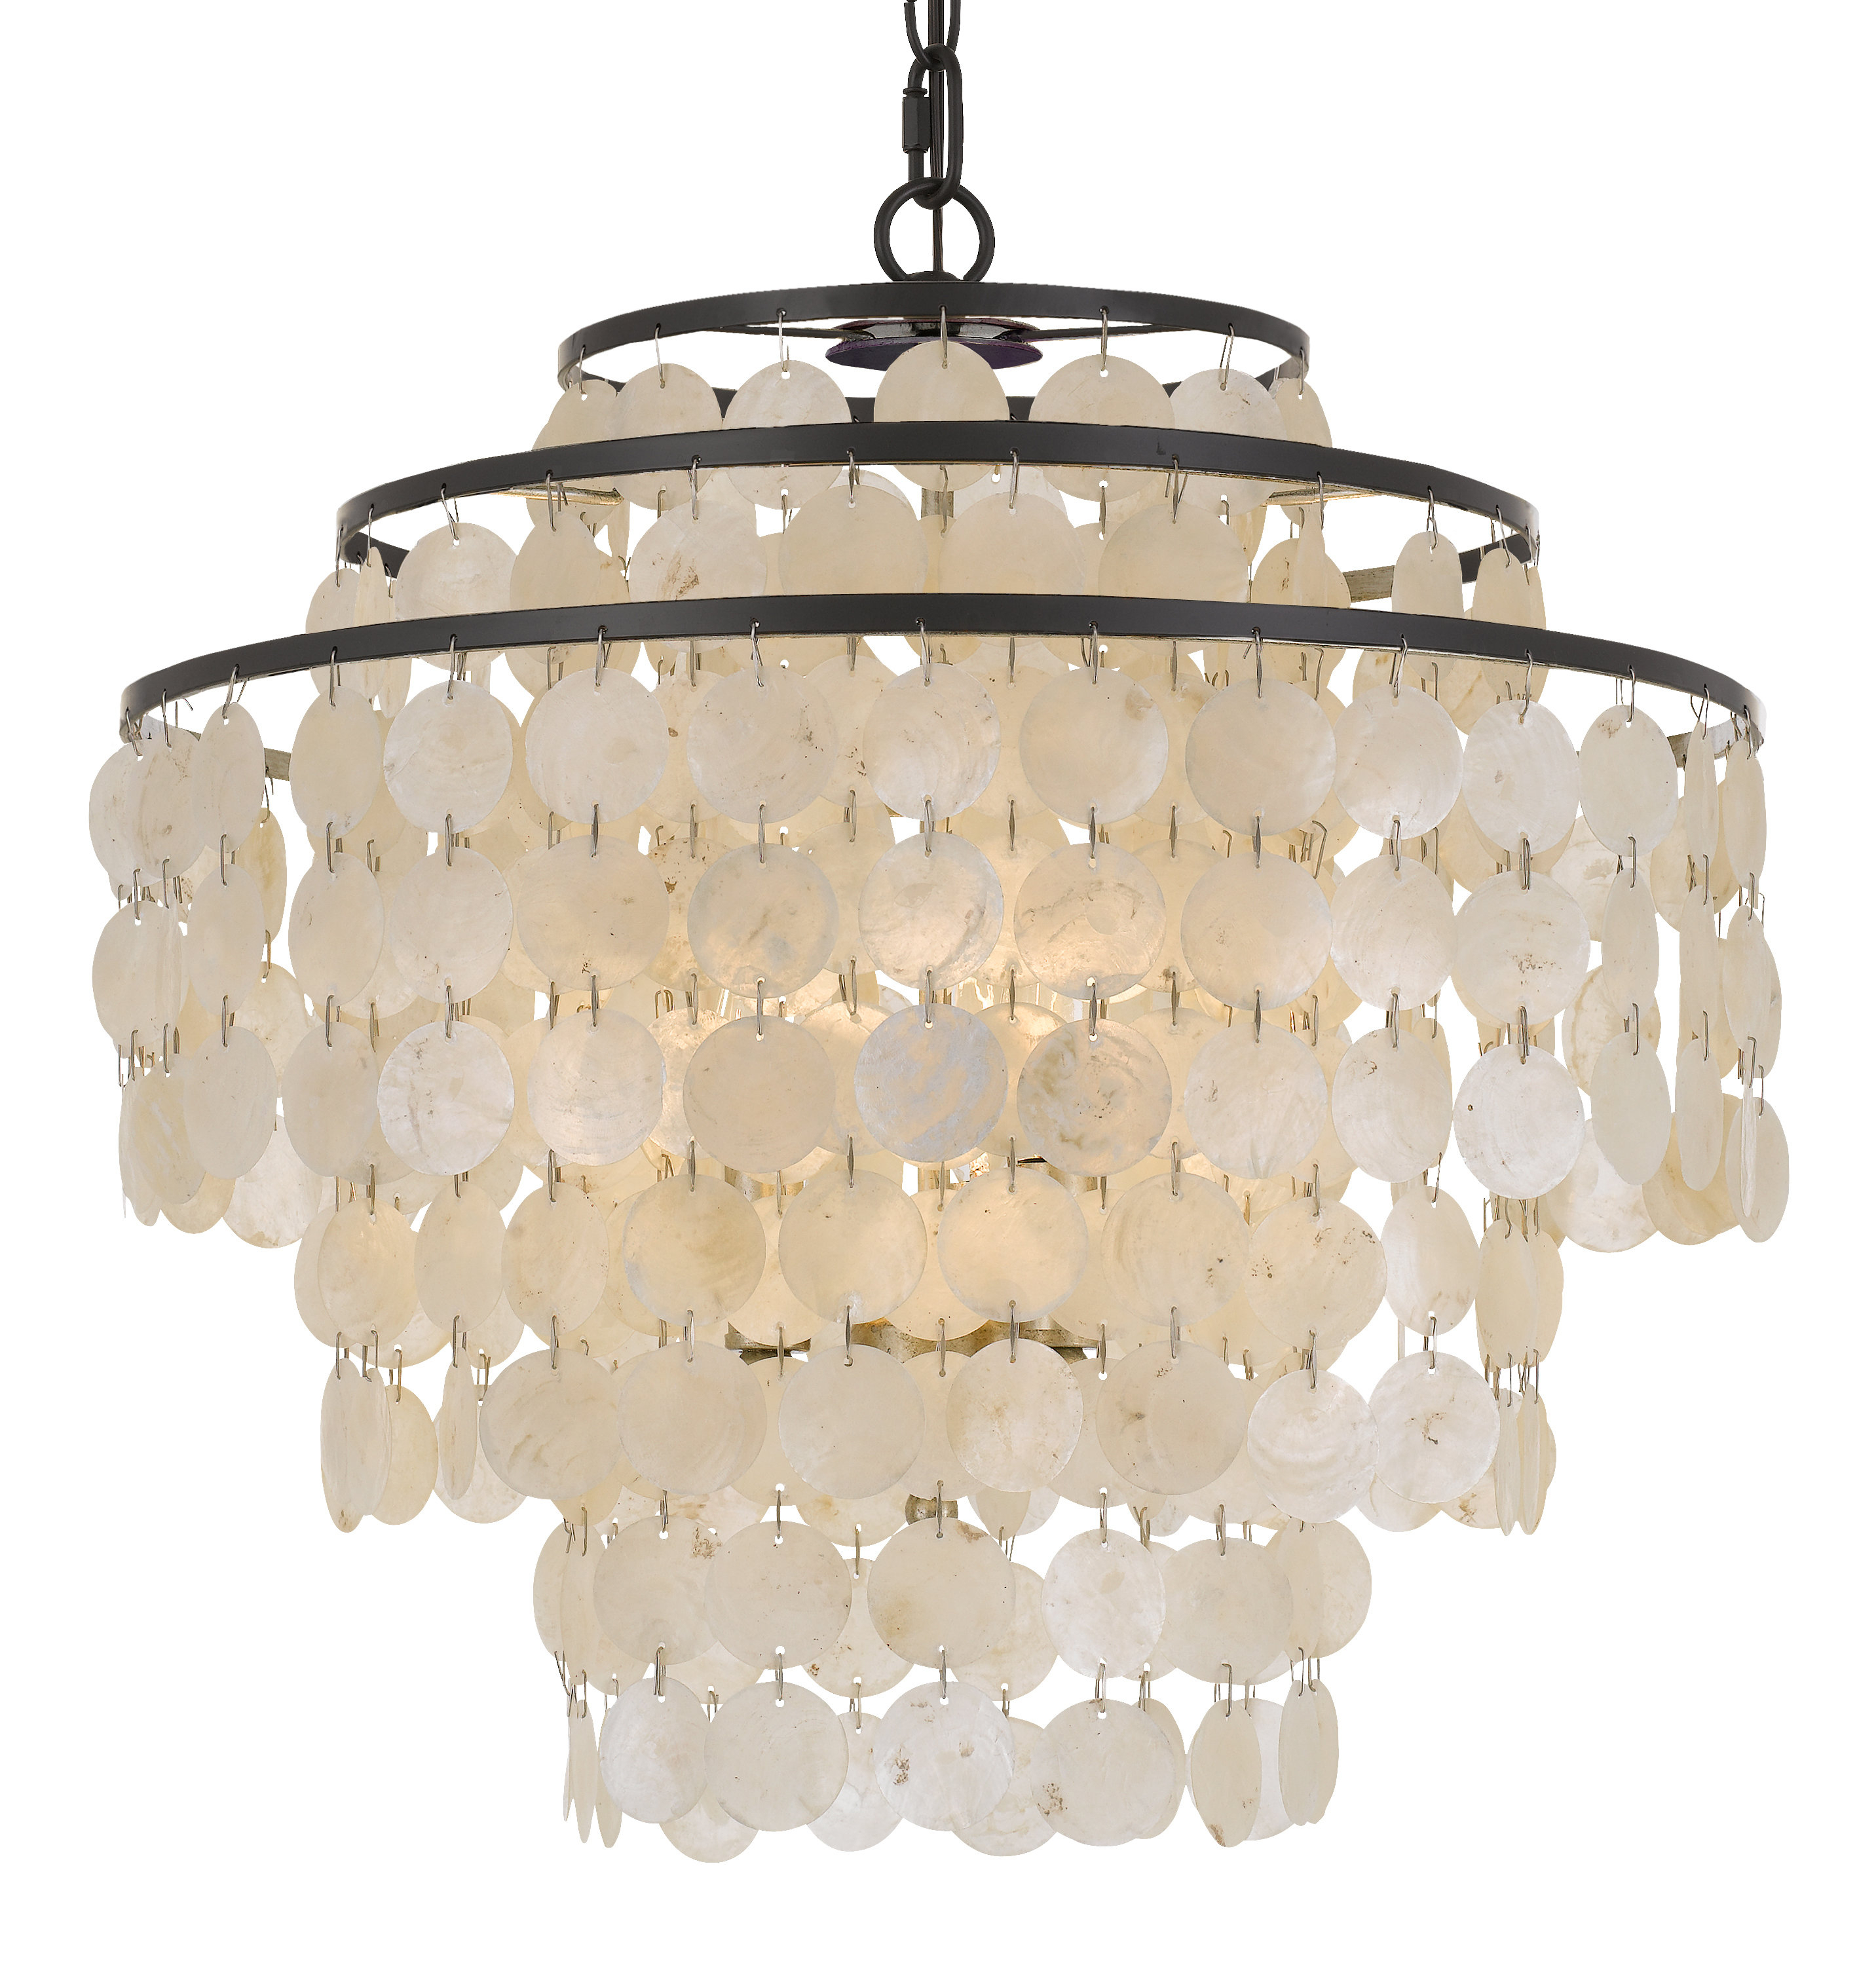 Modern & Contemporary Bedroom Chandelier | Allmodern Within Hatfield 3 Light Novelty Chandeliers (View 11 of 30)